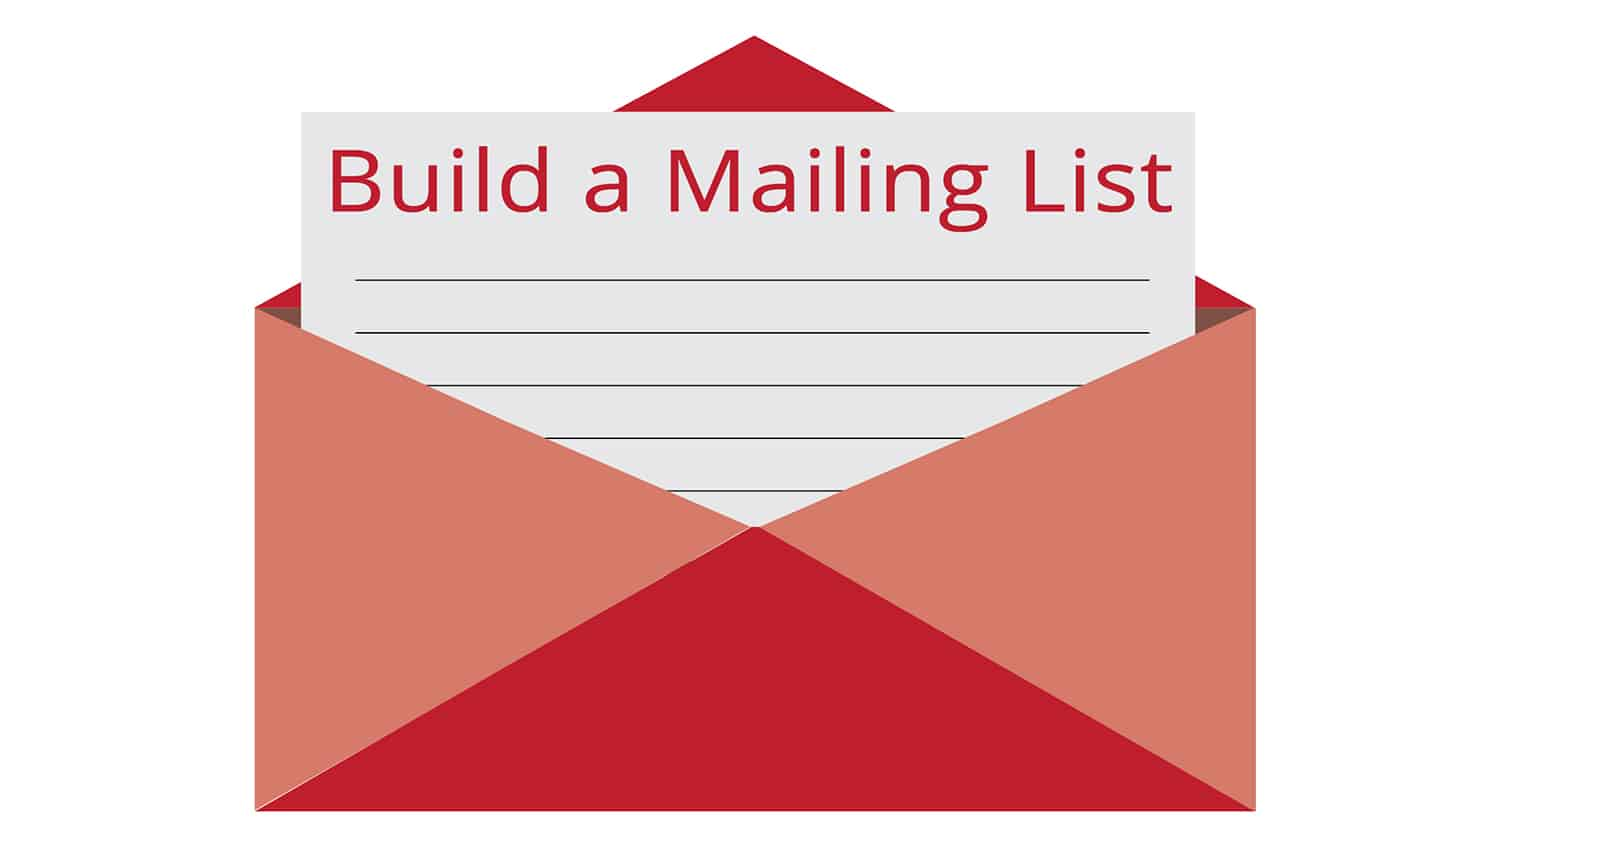 Build a Mailing List